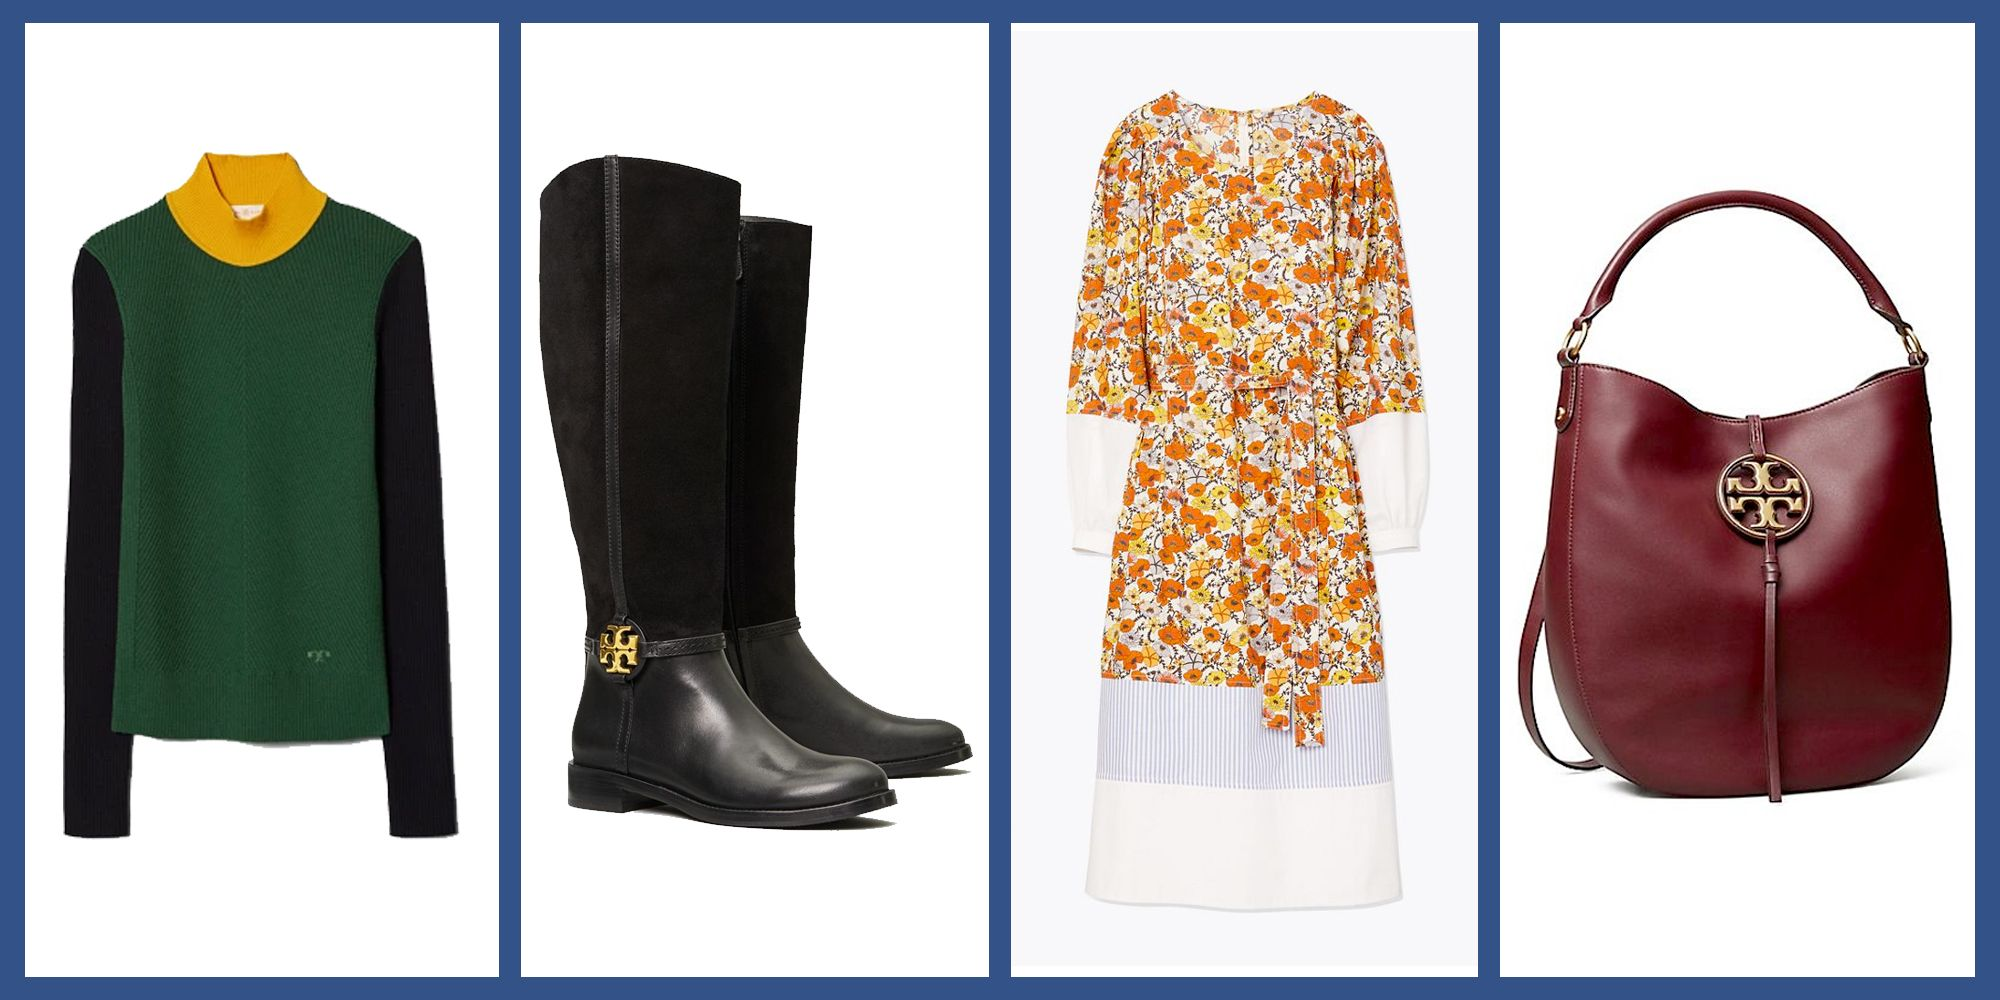 Stock Up on All of Your Tory Burch Fall Favorites Now